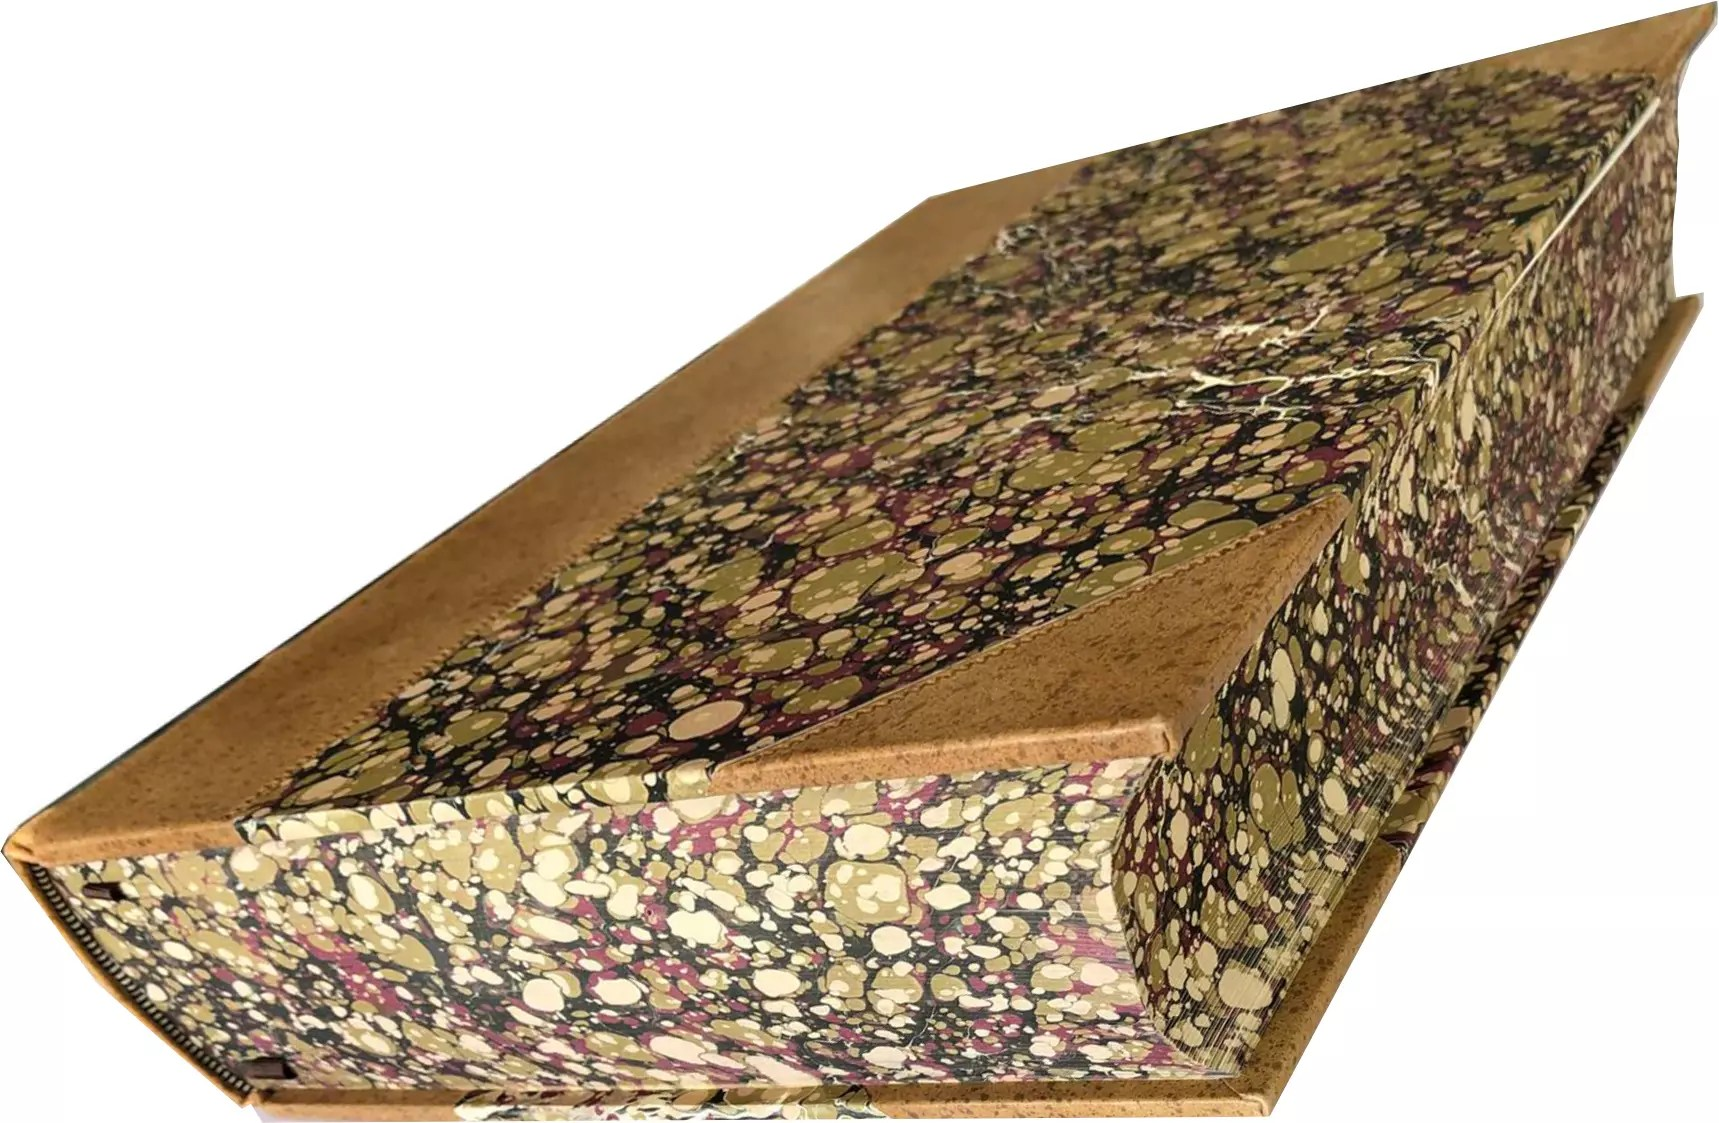 folio society johnstons dictionary marbled page edges